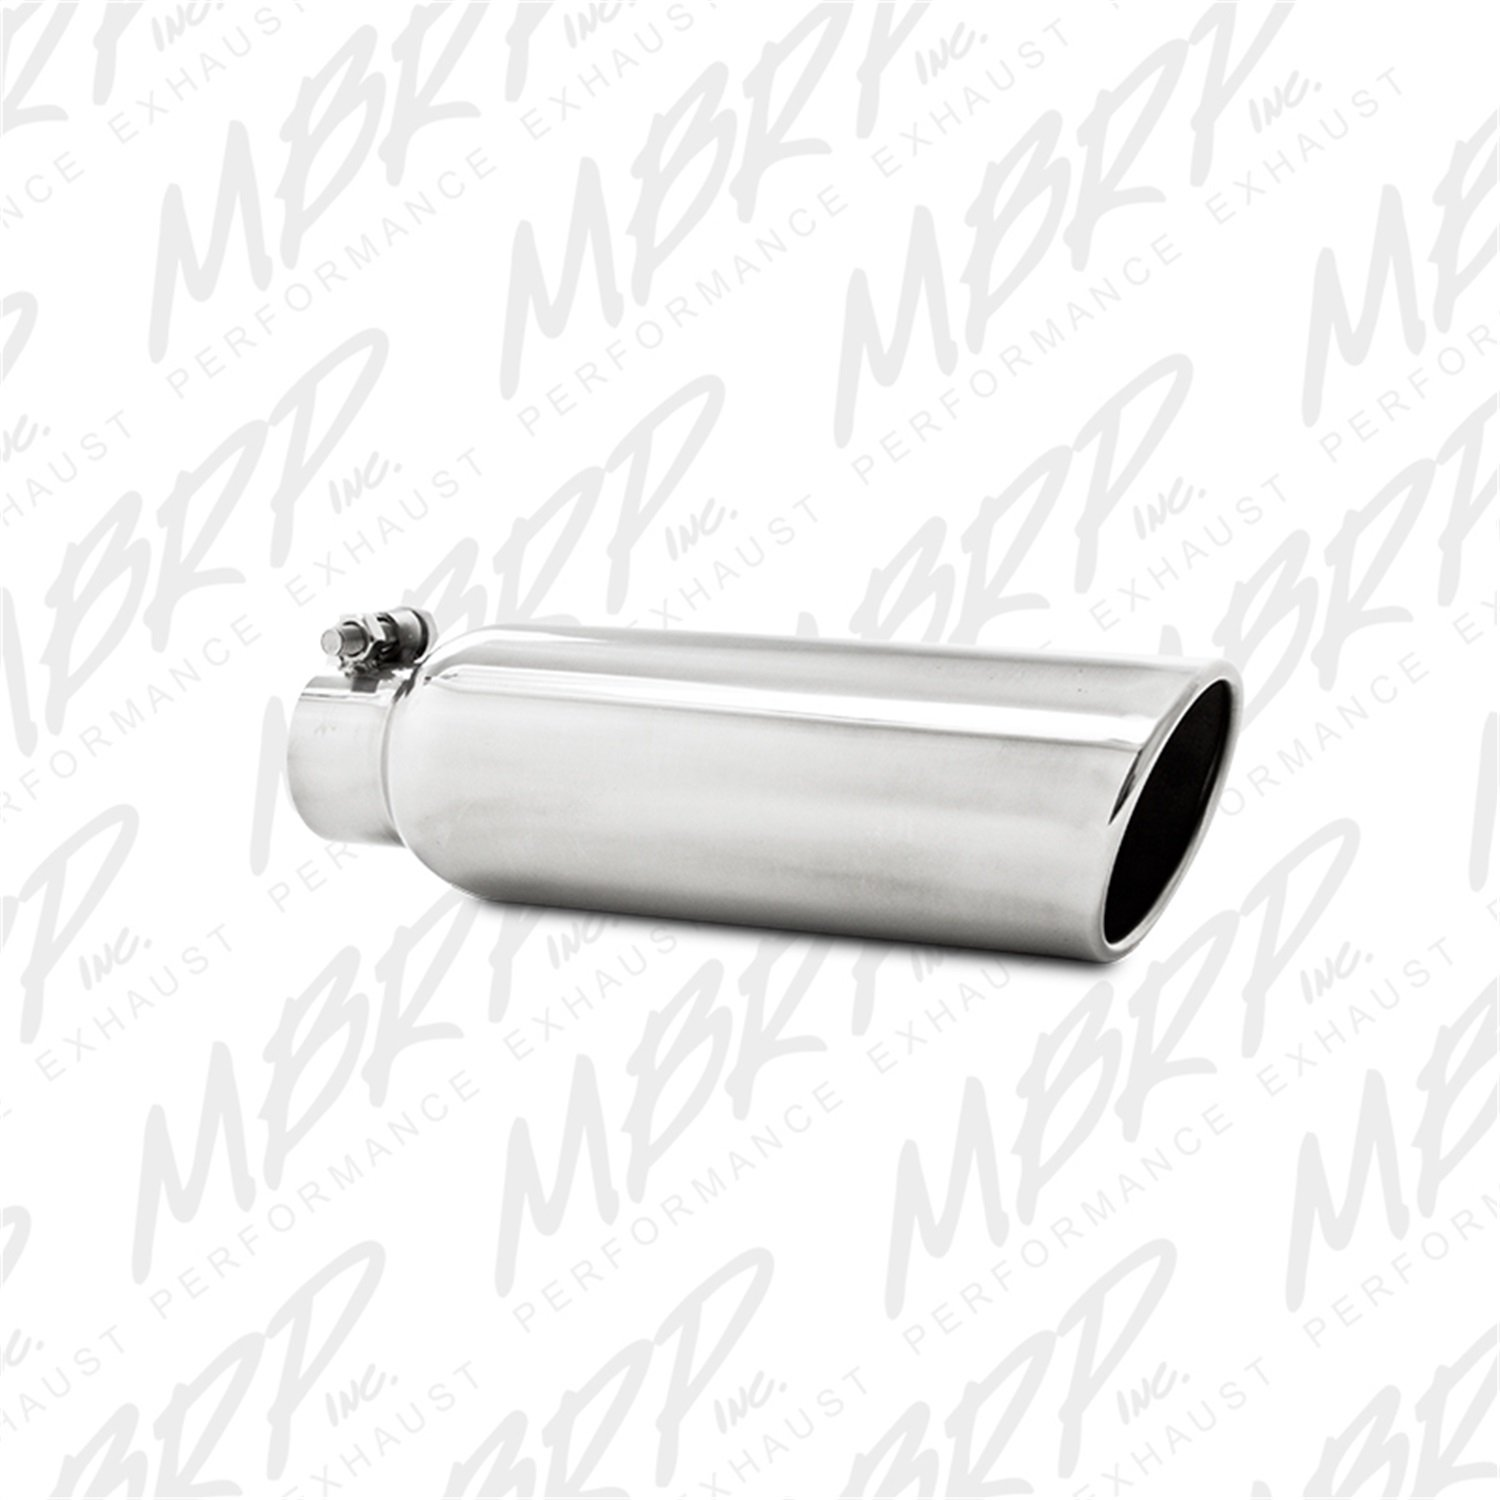 MBRP T5147 3.5' O.D. 2.25' Inlet 12' Length T304 Stainless Steel Angled Cut Rolled End Clampless Exhaust Tip